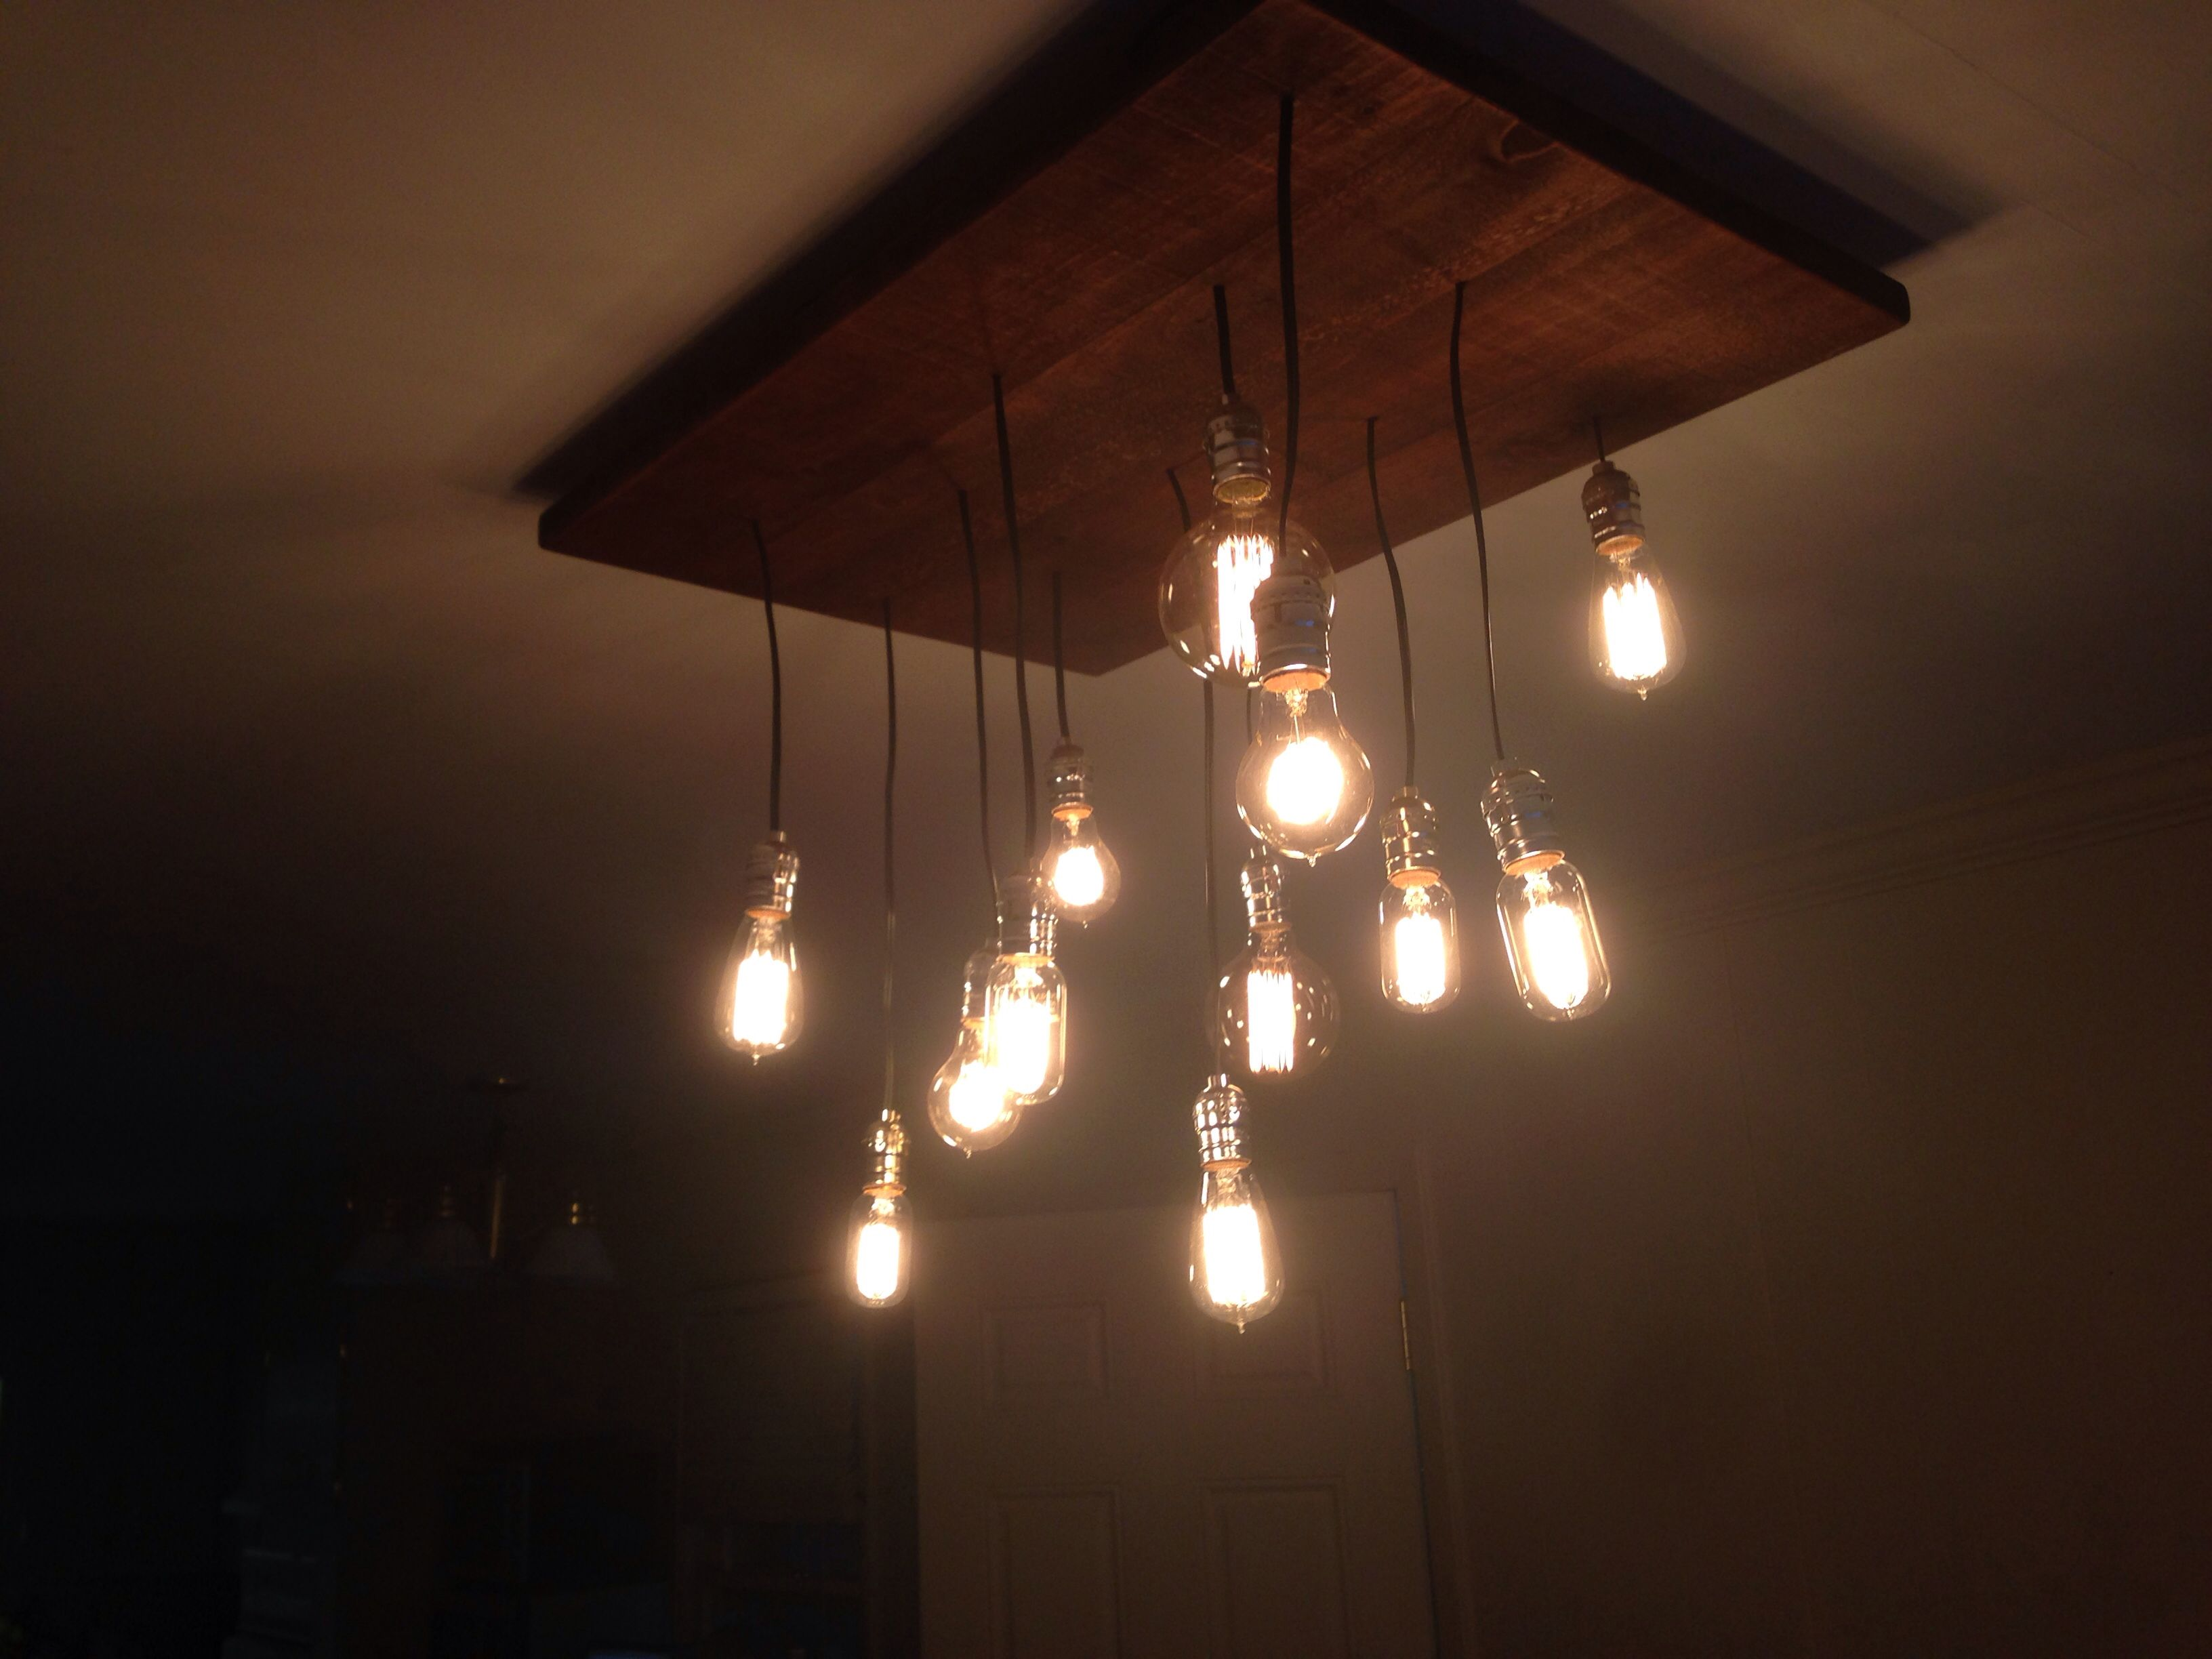 Diy rustic chandelier with edison light bulbs for Diy edison light fixtures